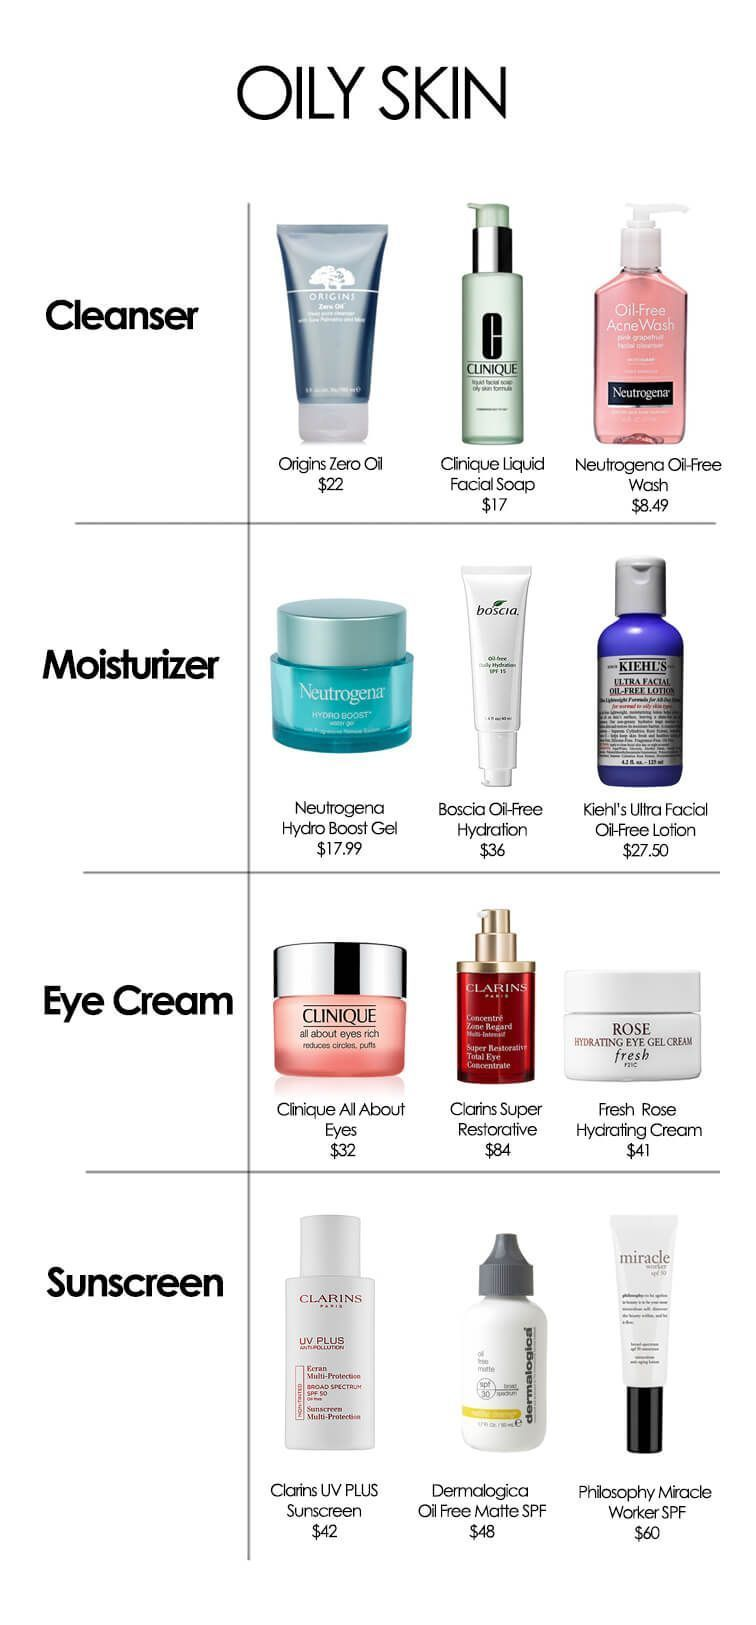 It So Important To Have A Solid Skincare Routine So Today I Wanted To Share A Guide Of Skincare Recomm In 2020 Skin Cleanser Products Cosmetic Skin Care Oily Skin Care